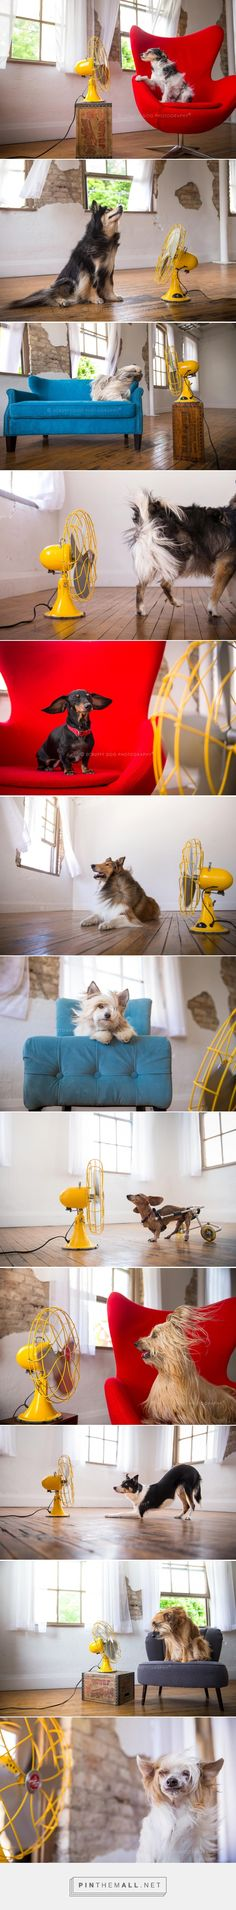 BLOW Photo Series from Illona Haus of Scruffy Dog Photography - Dog Milk